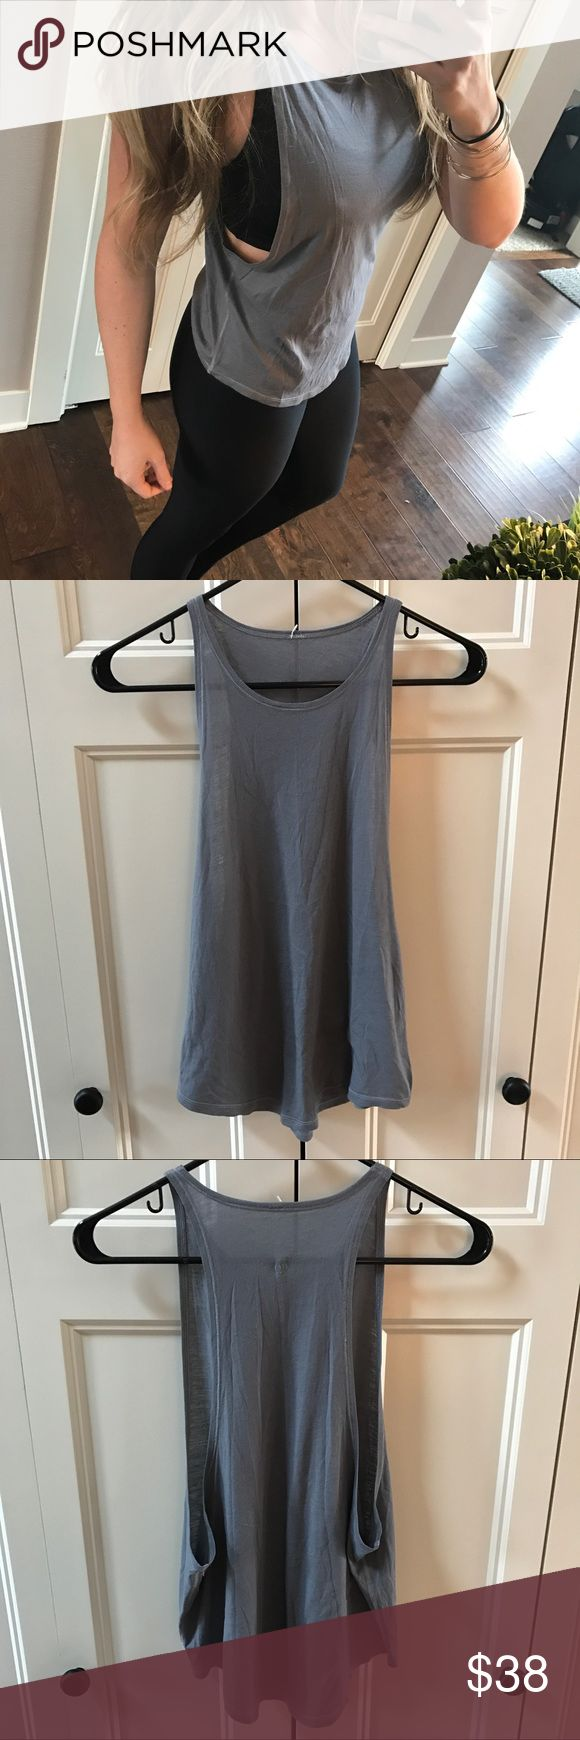 Lululemon Muscle Tank Lululemon Muscle Tank. Dark gray. Size 6. Very excellent used condition ! No trades. If you like something, please use the offer button, I may not respond to offers in comments. I play by Posh's rules. Bundle for UP TO a 25% discount as well as saving on your shipping! Play nice and happy shopping! lululemon athletica Tops Tank Tops